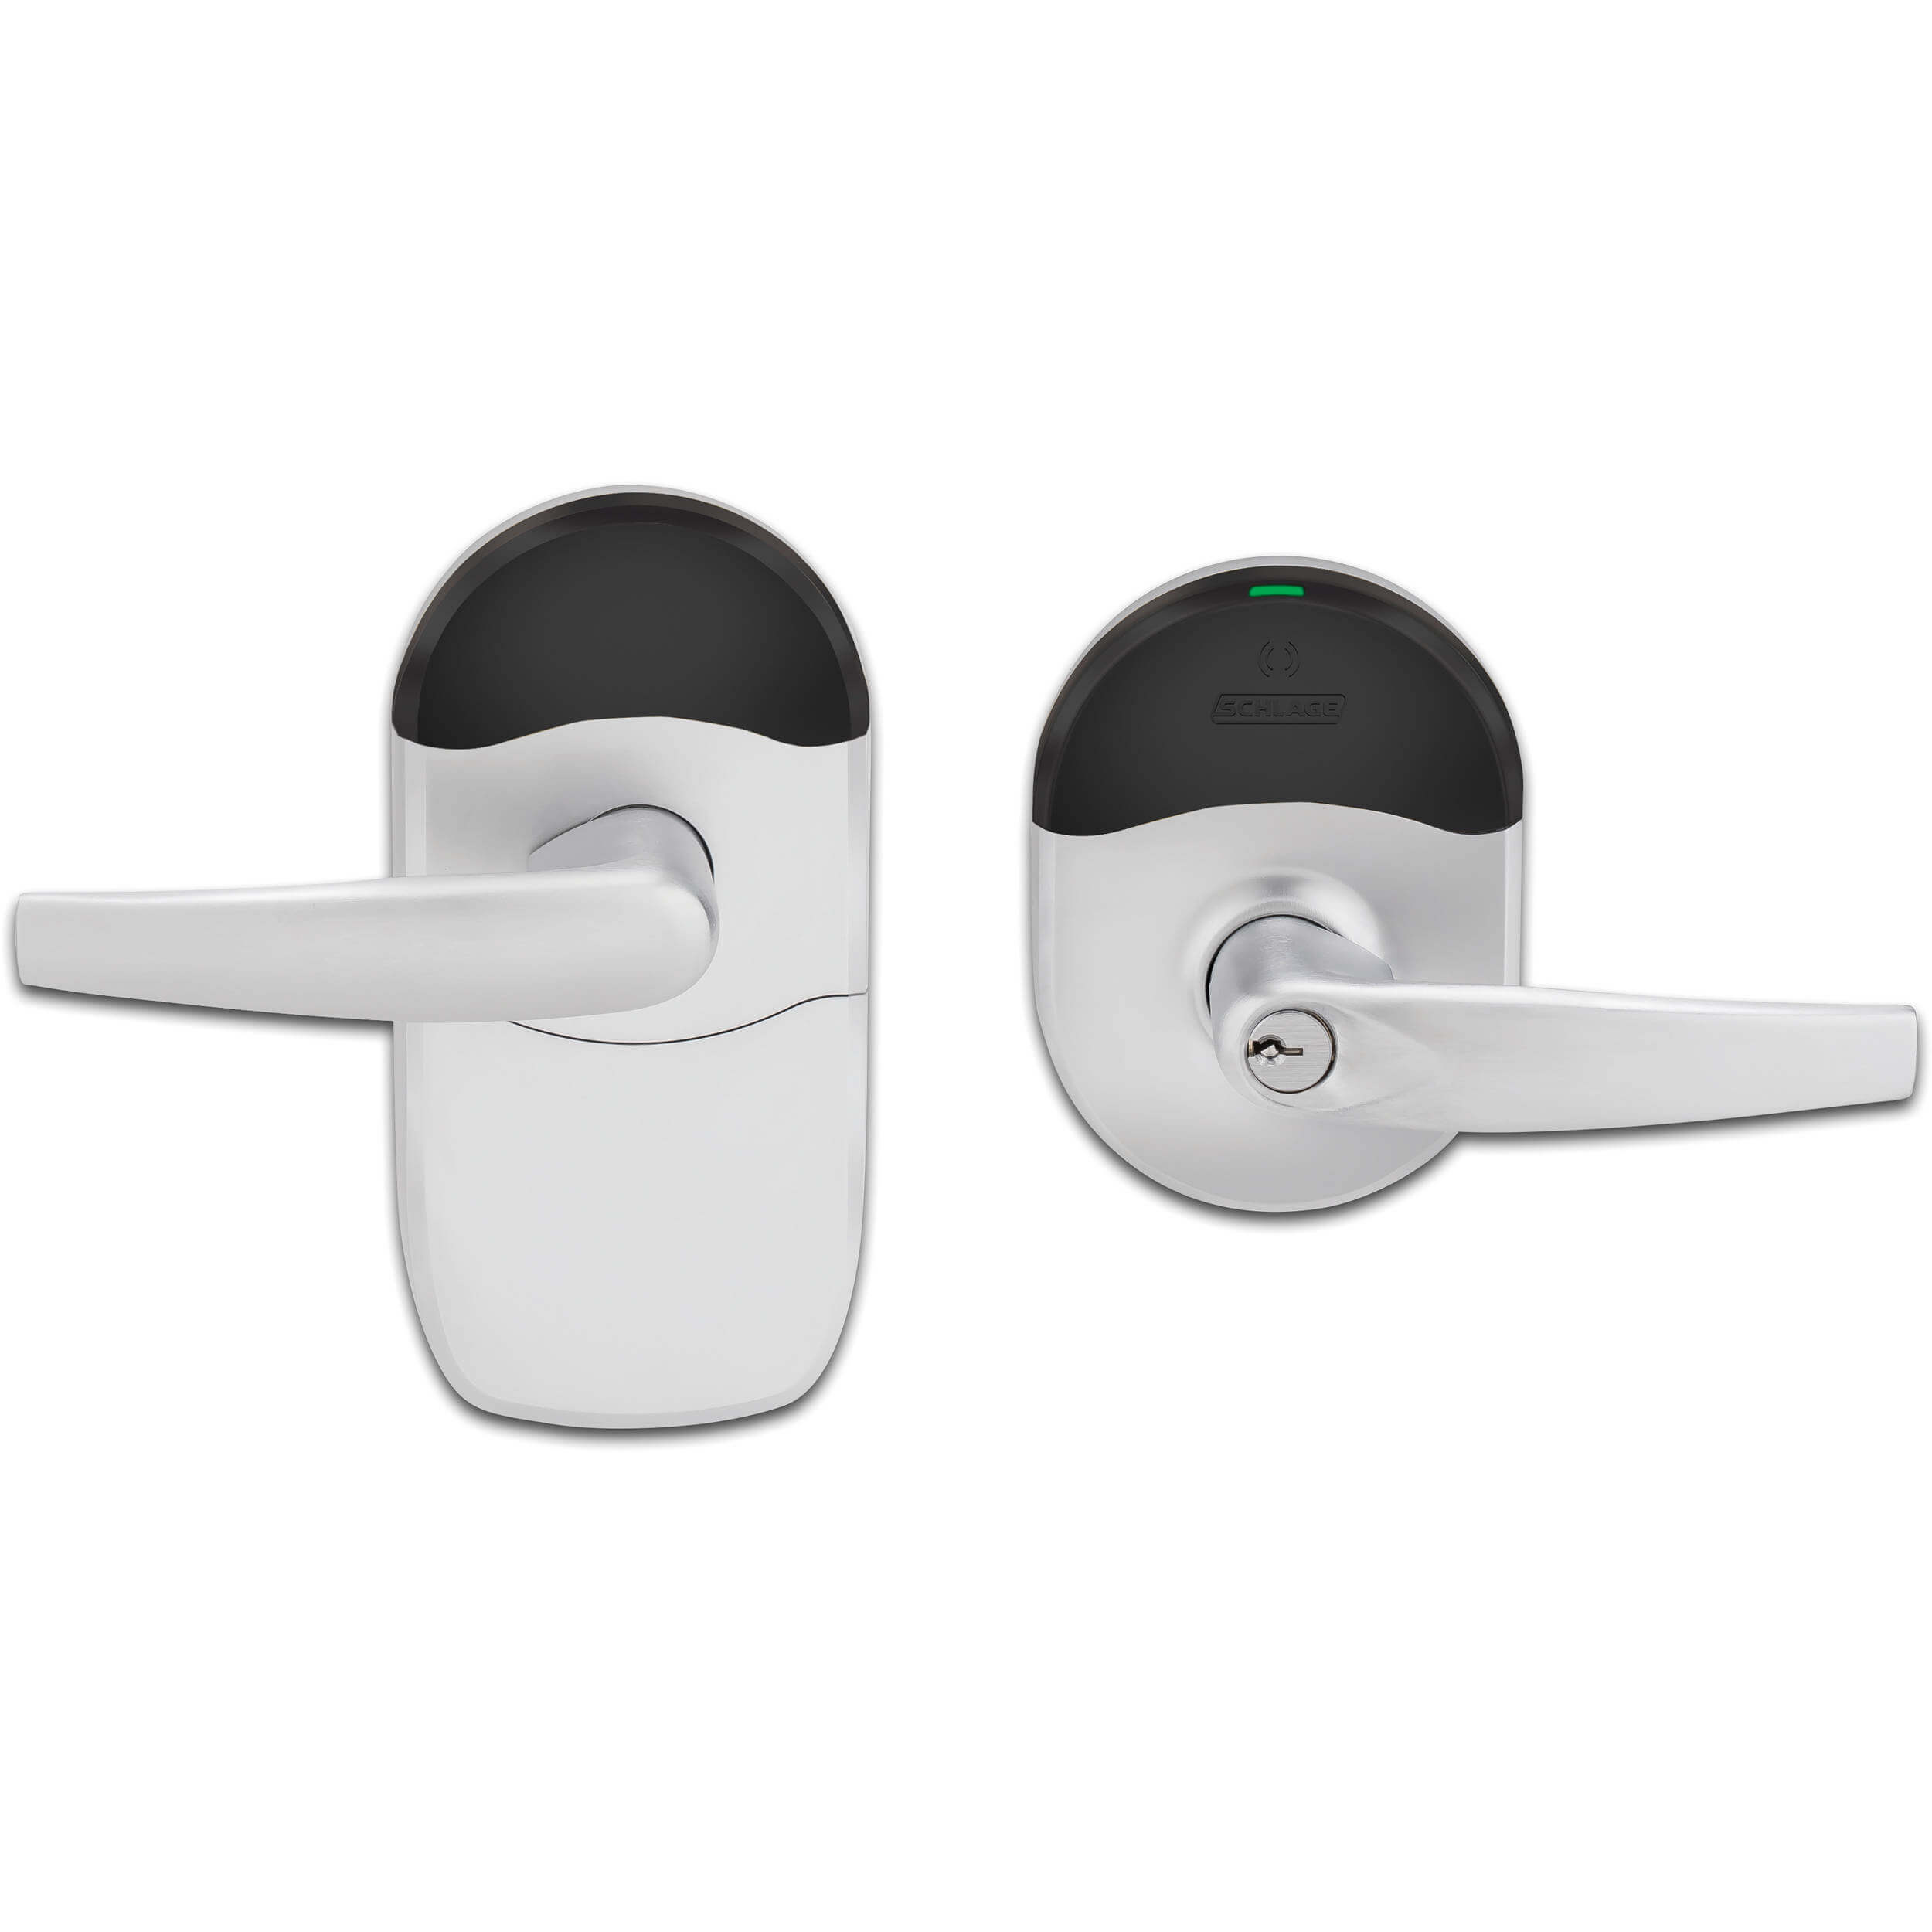 Schlage Wireless Door Access